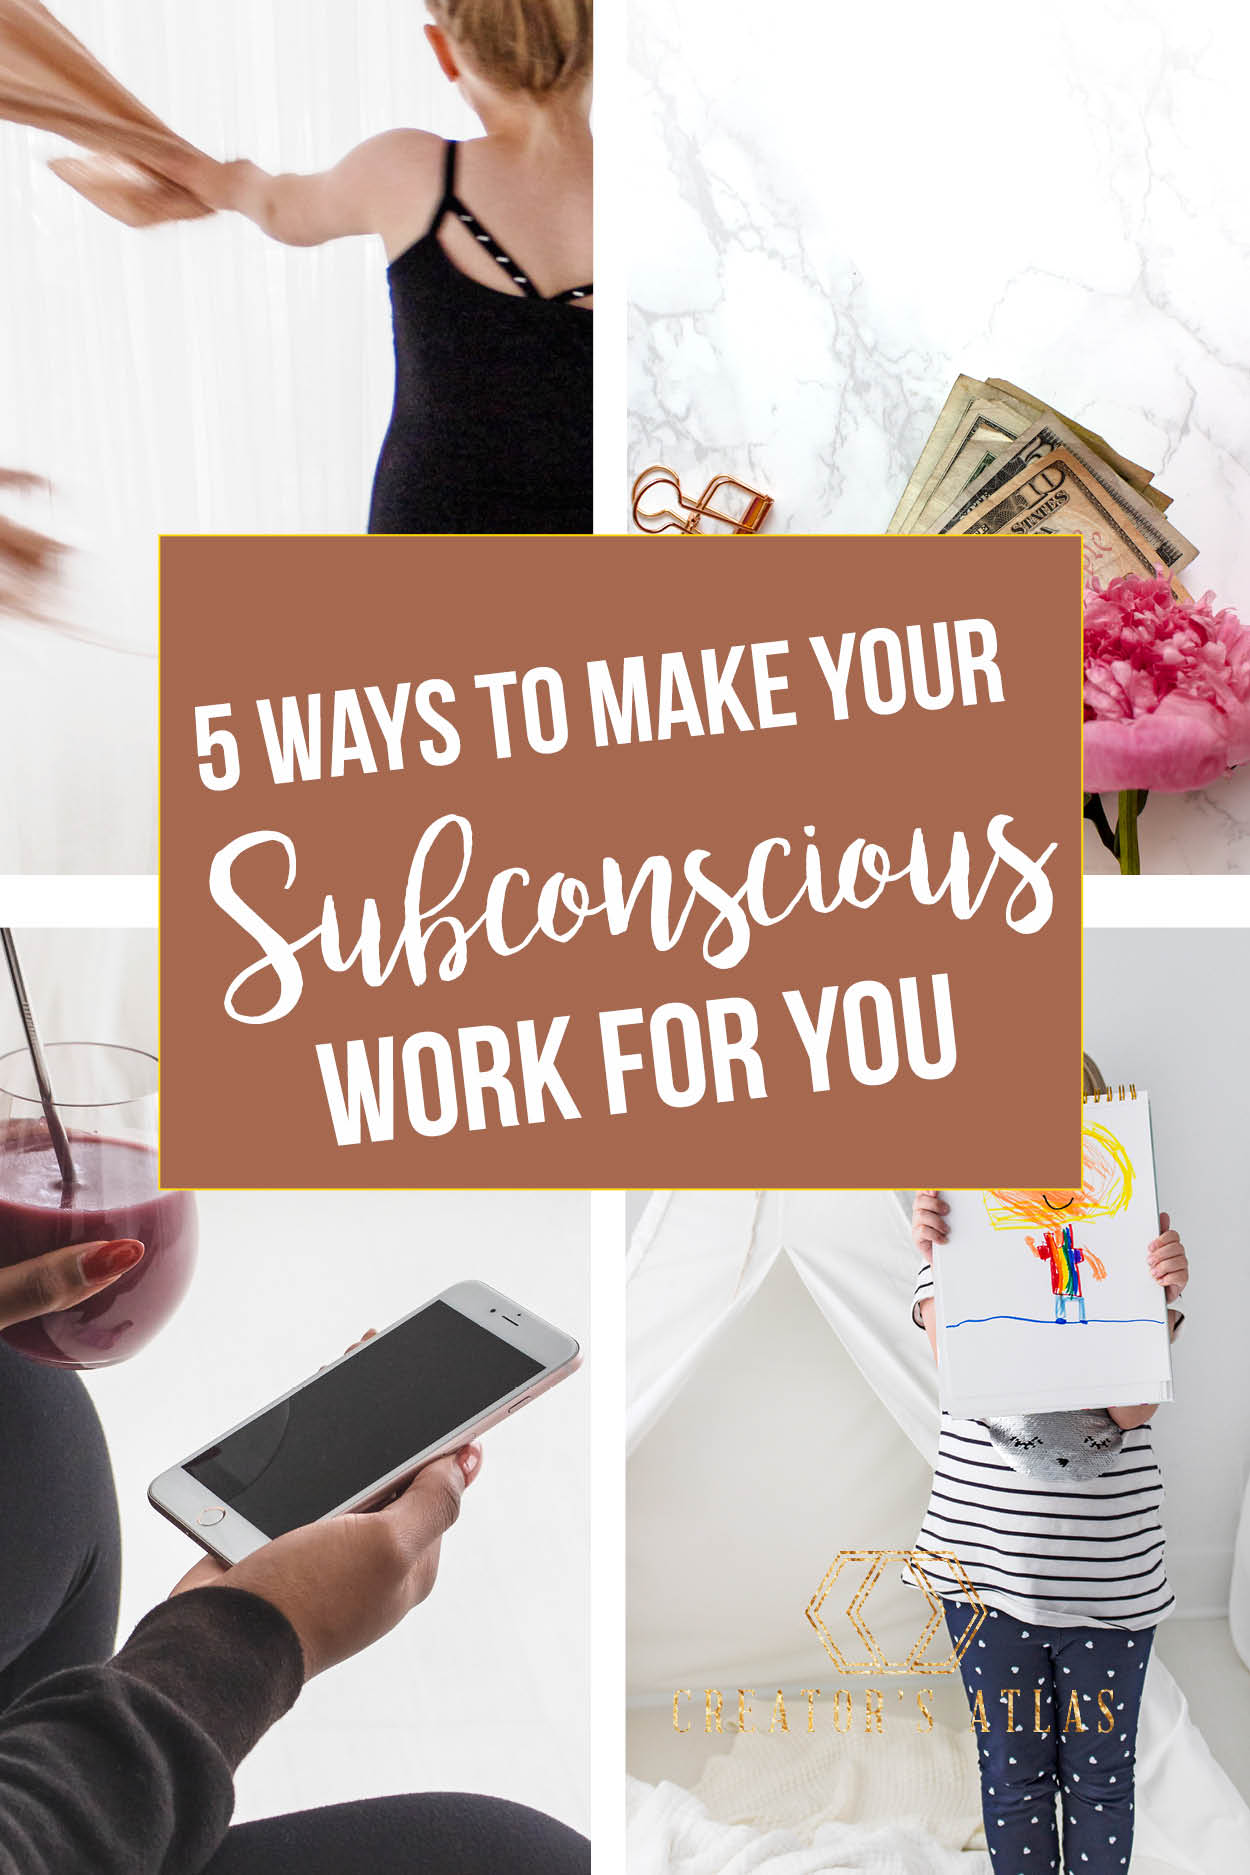 In this post, I show you 5 simple steps that you can use to easily reprogram your subconscious mind. he power of the subconscious mind is amazing. The subconscious mind has the power to heal and solve all of life's problems. Here is how your mind can help. #unconscious The subconscious mind can be reprogrammed to change your life.